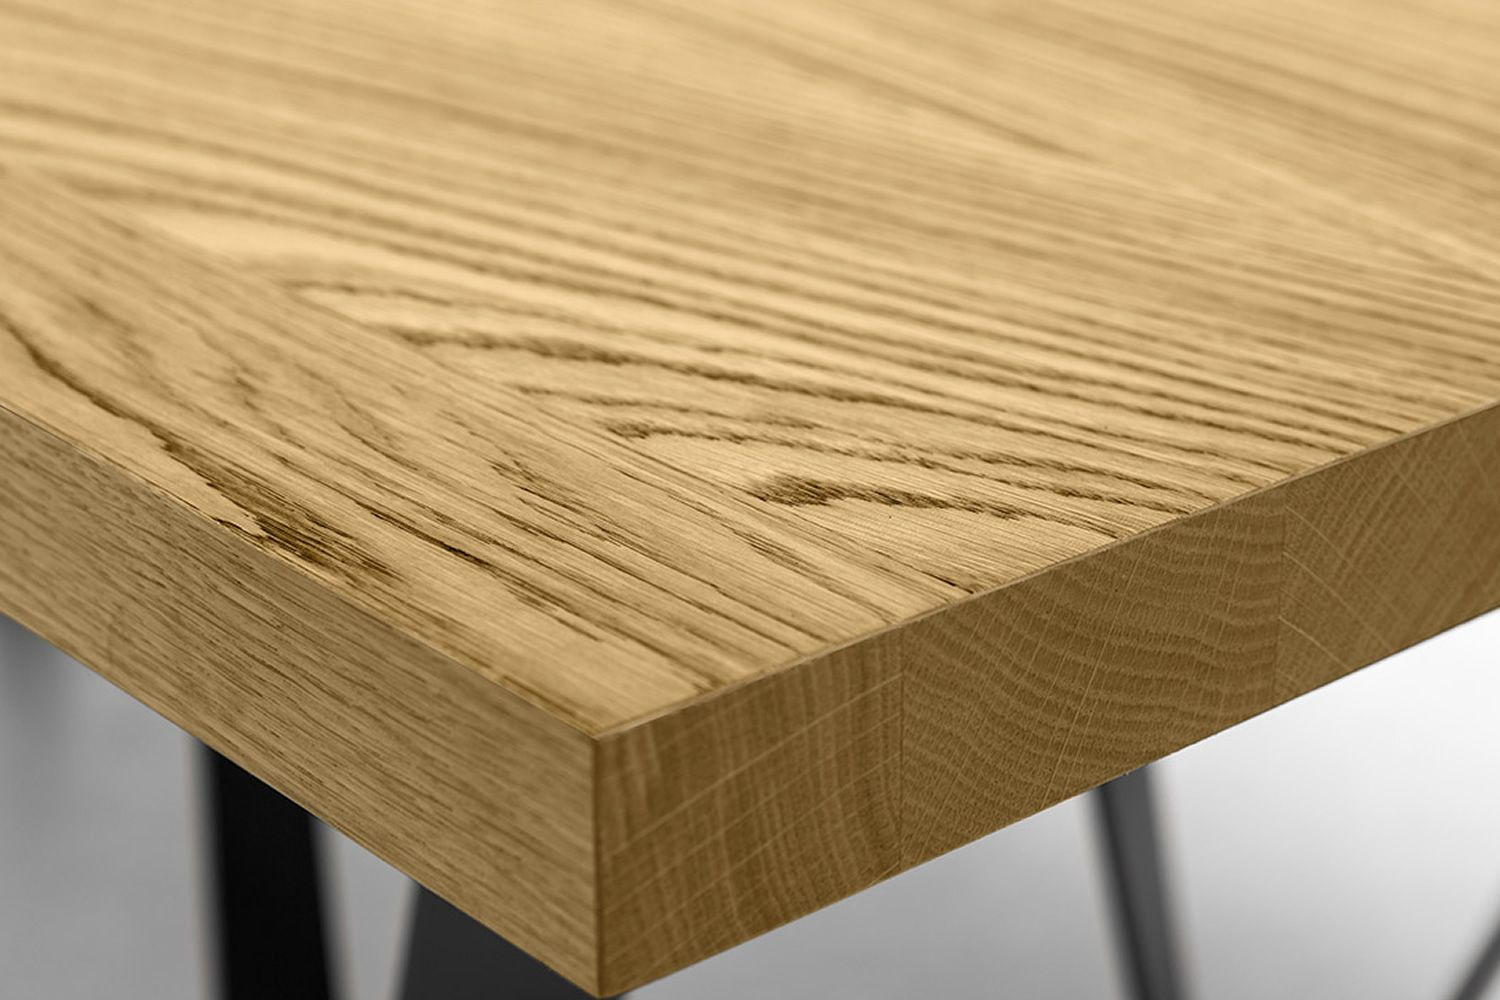 Detail of the top in natural oak